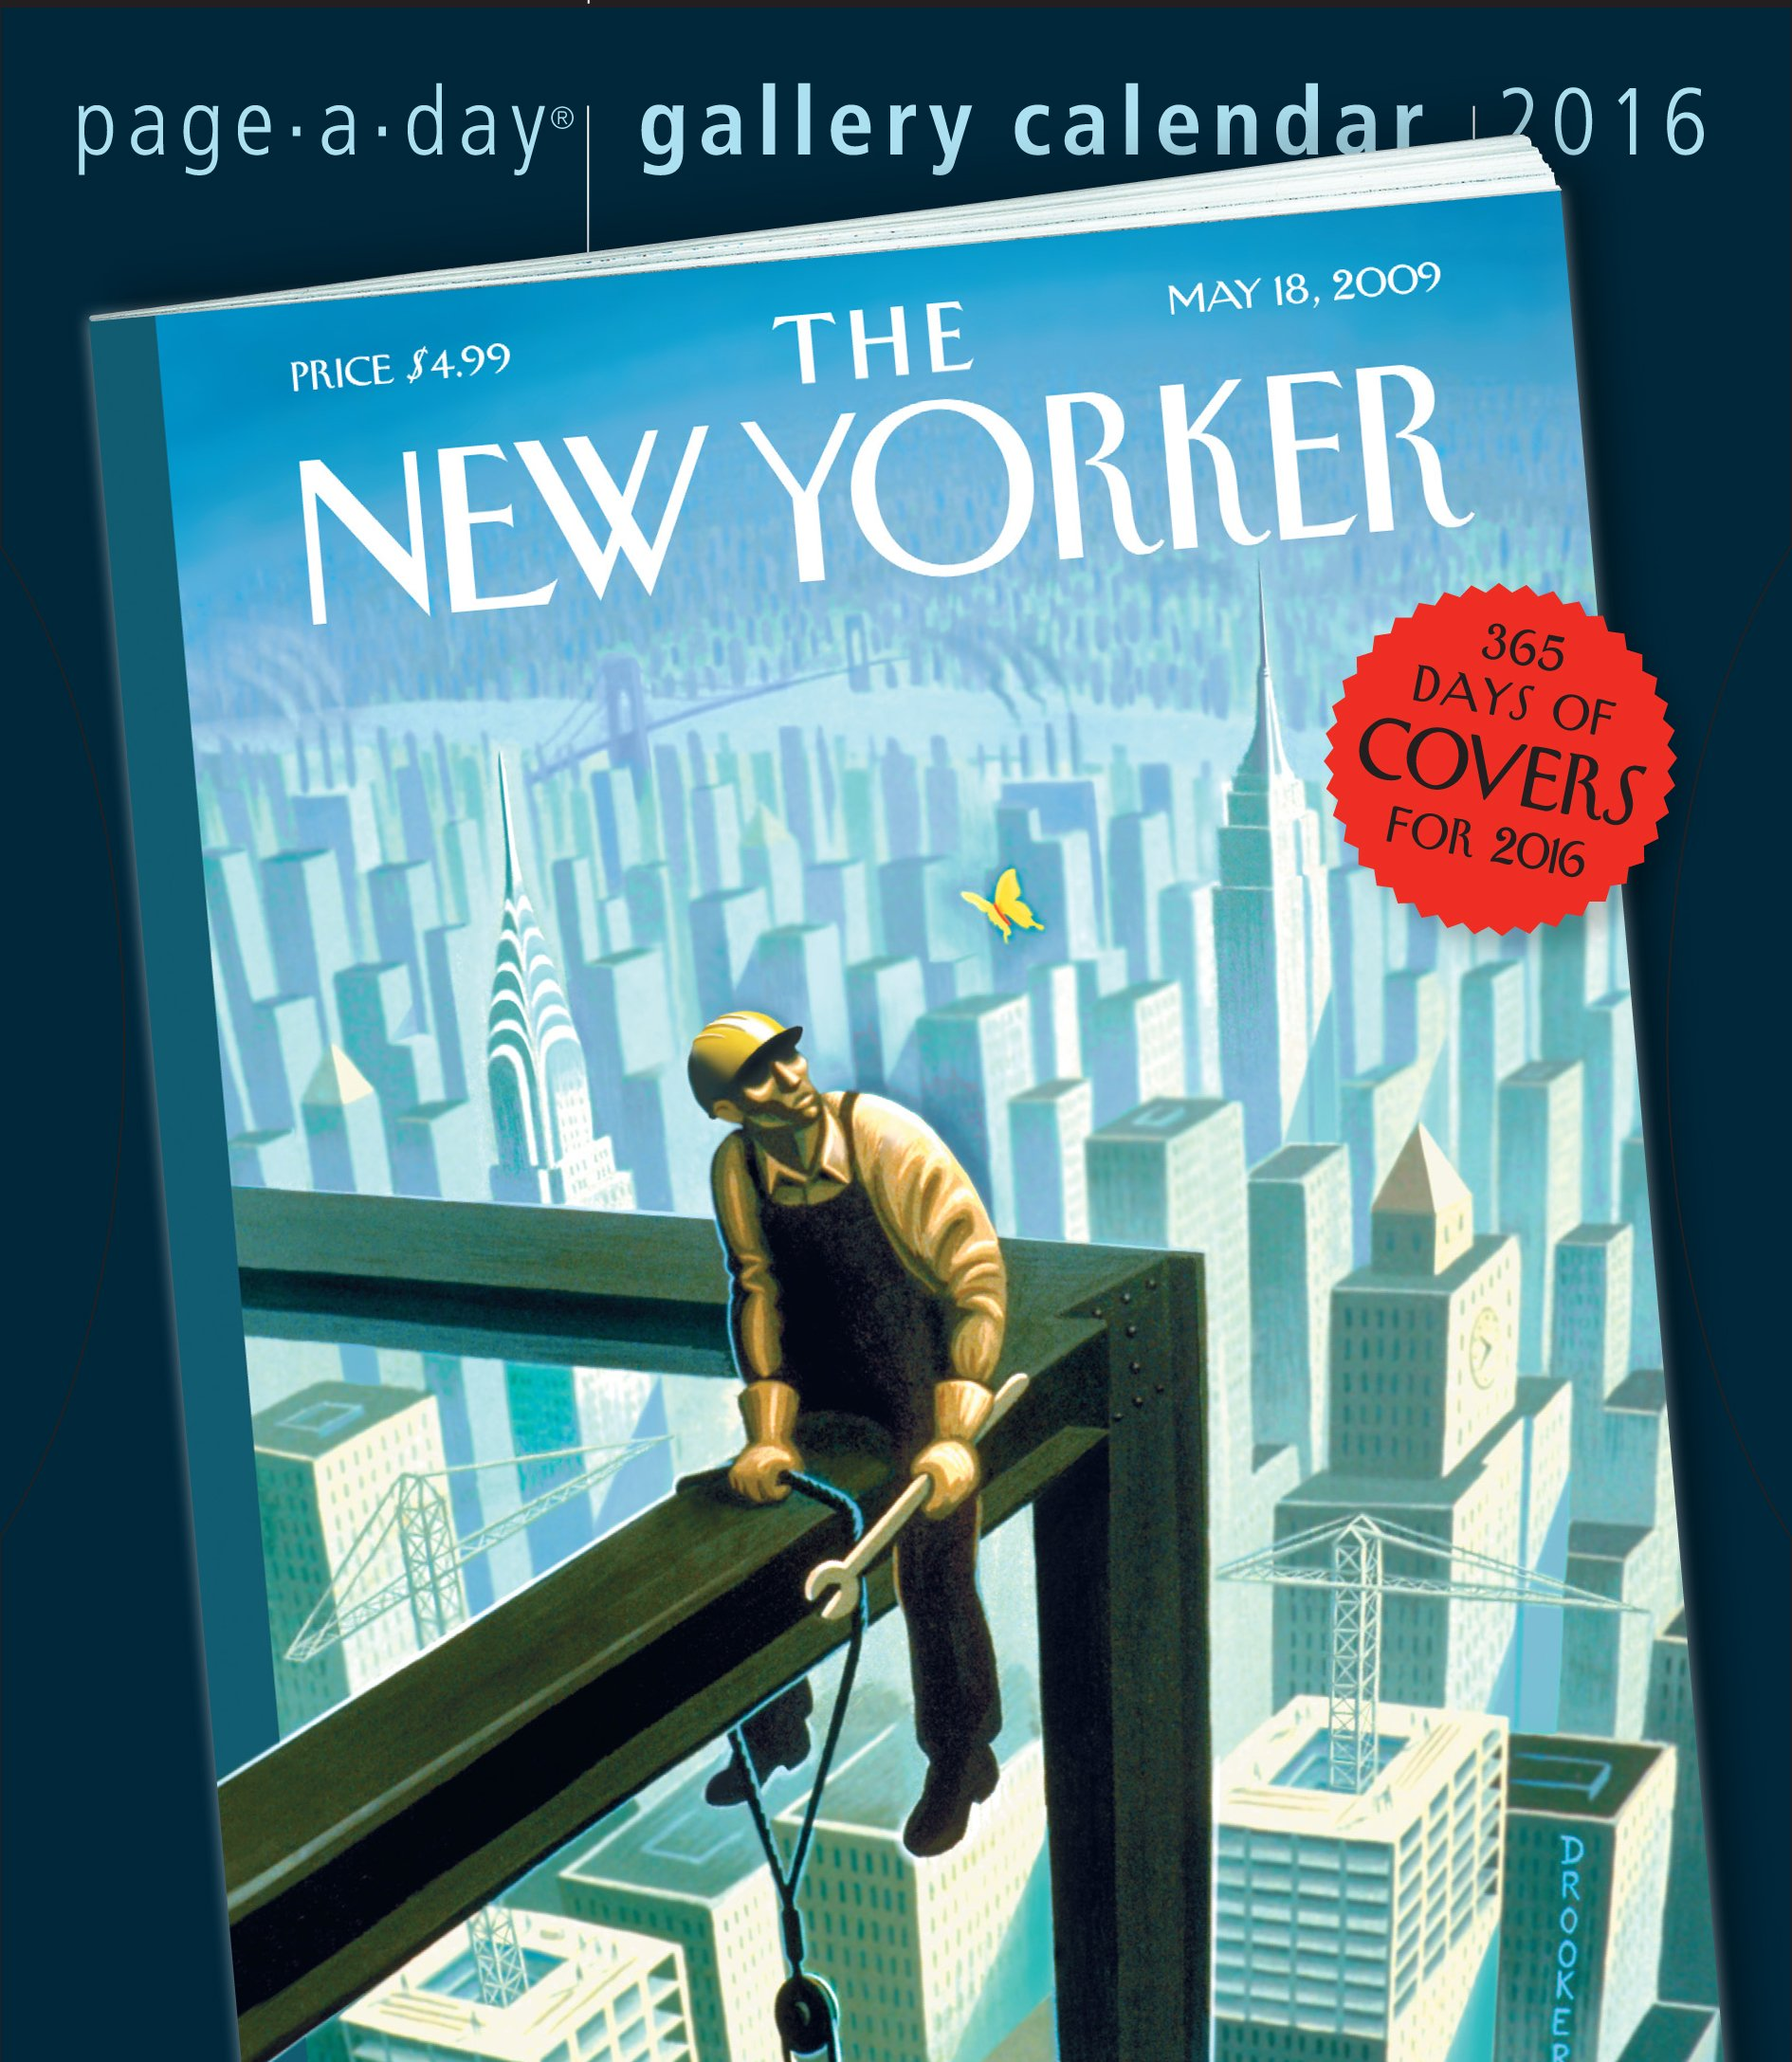 The New Yorker 2016 Gallery Calendar 365 Days Of Covers 2016